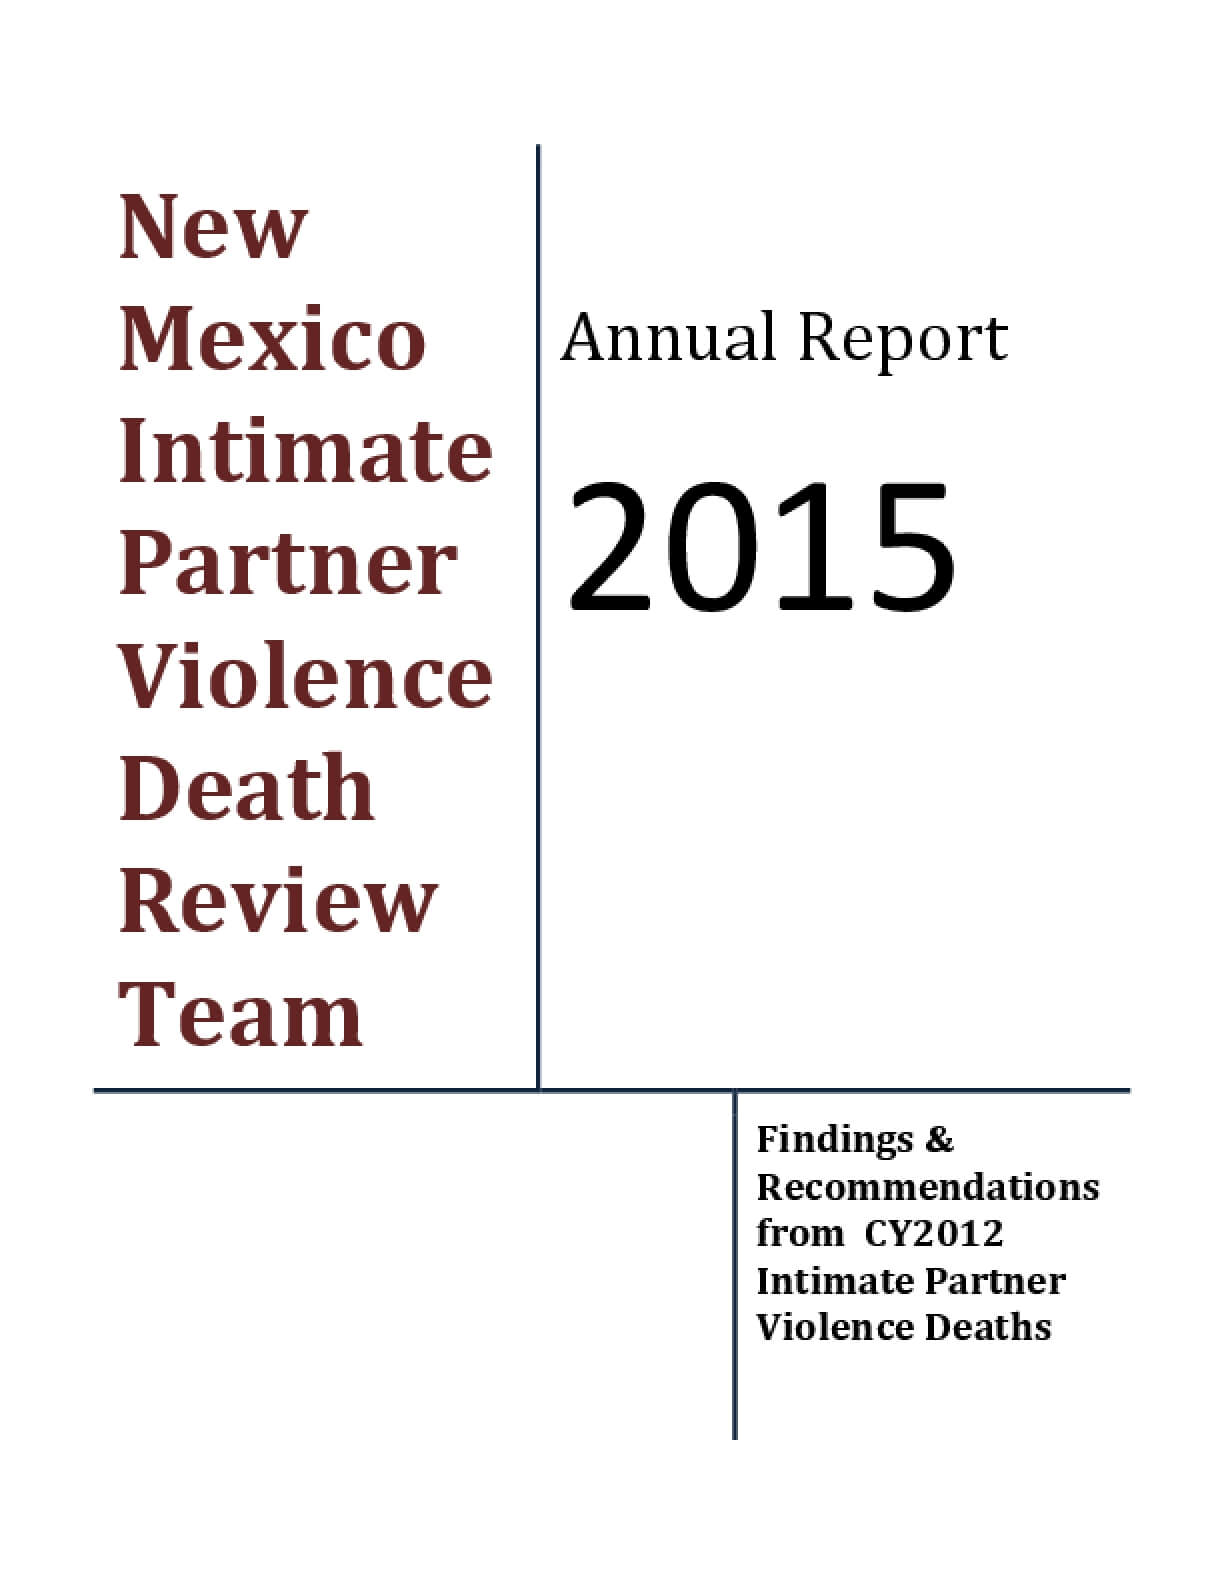 New Mexico Intimate Partner Violence Death Review Team: Annual Report 2015